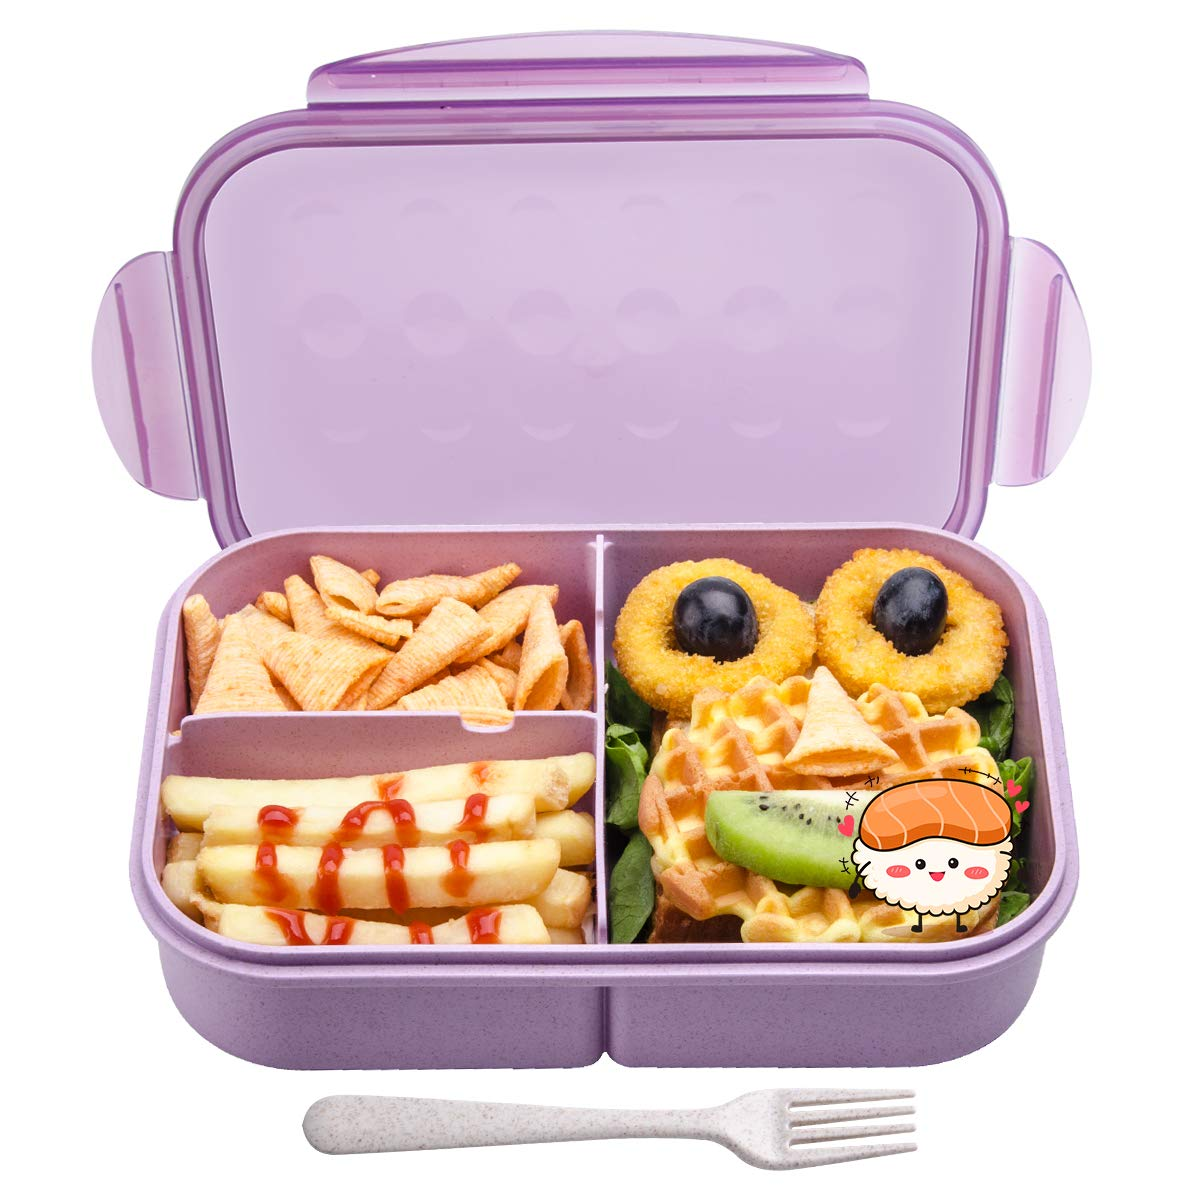 Bento Box for Kids, Leakproof Lunch Box with 3 Compartments, Lunch container safe for kids (Purple) By MissBig by MissBig